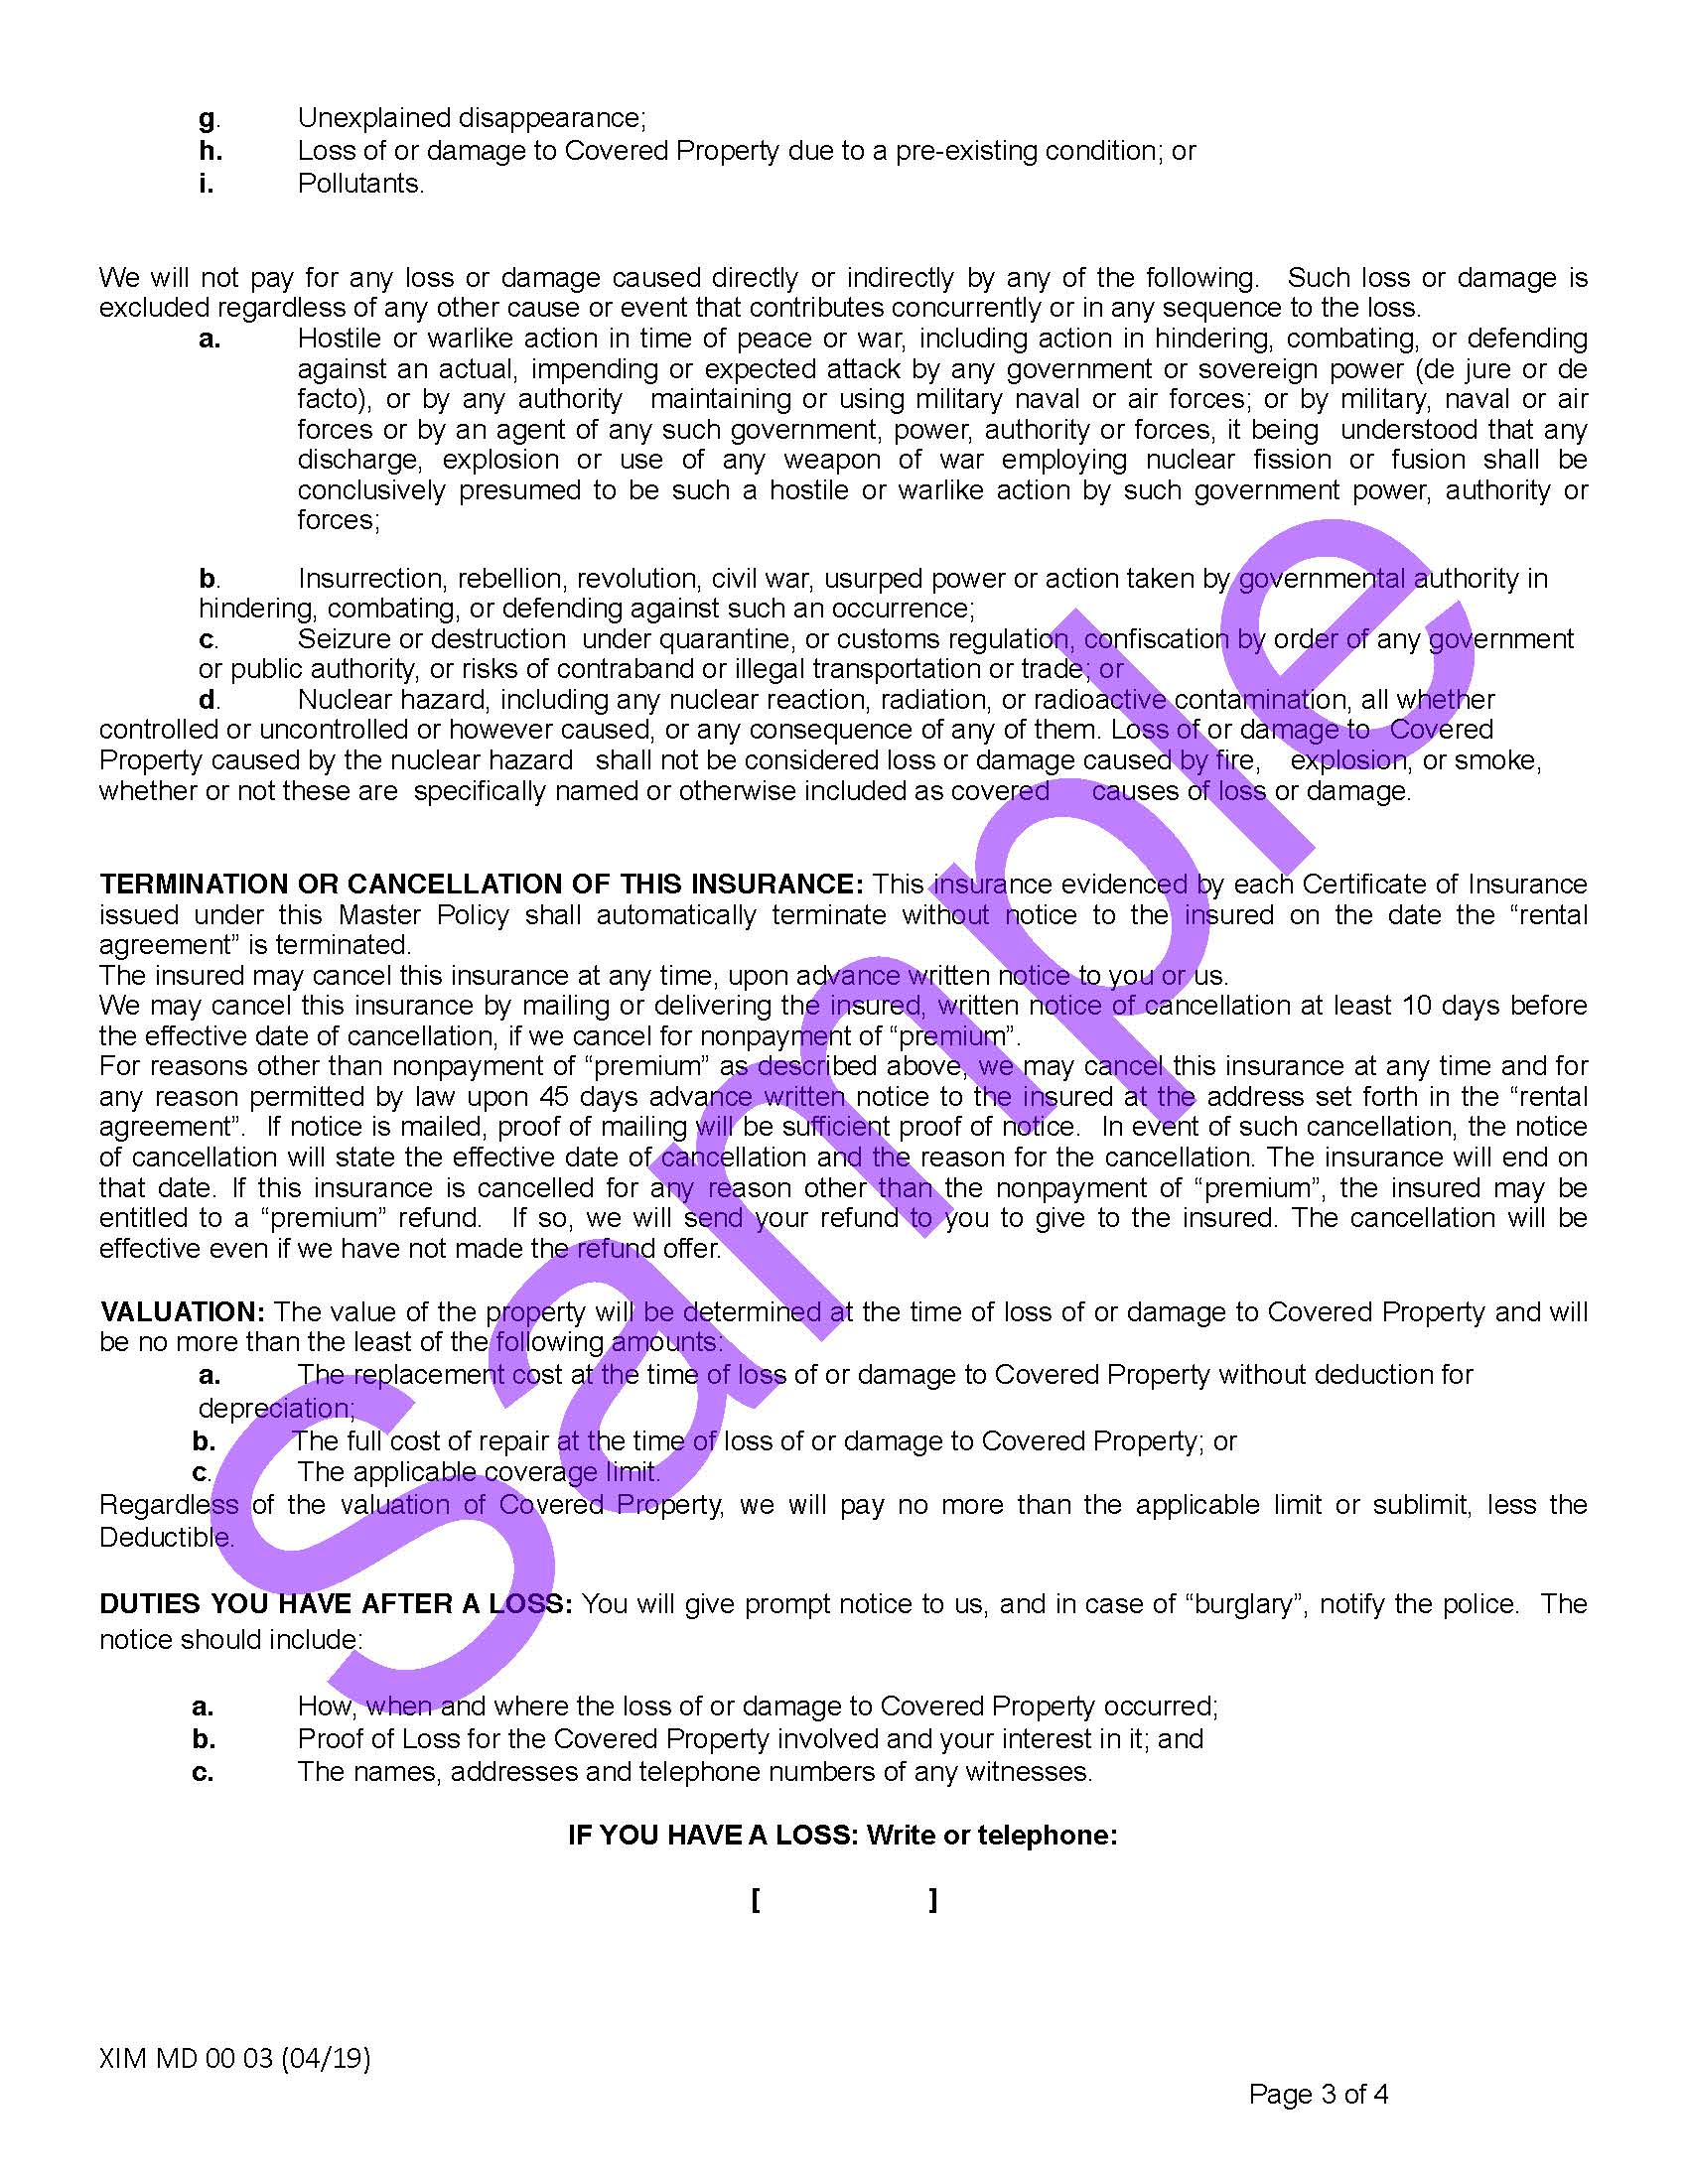 XIM MD 00 03 04 19 Maryland Certificate of InsuranceSample_Page_3.jpg